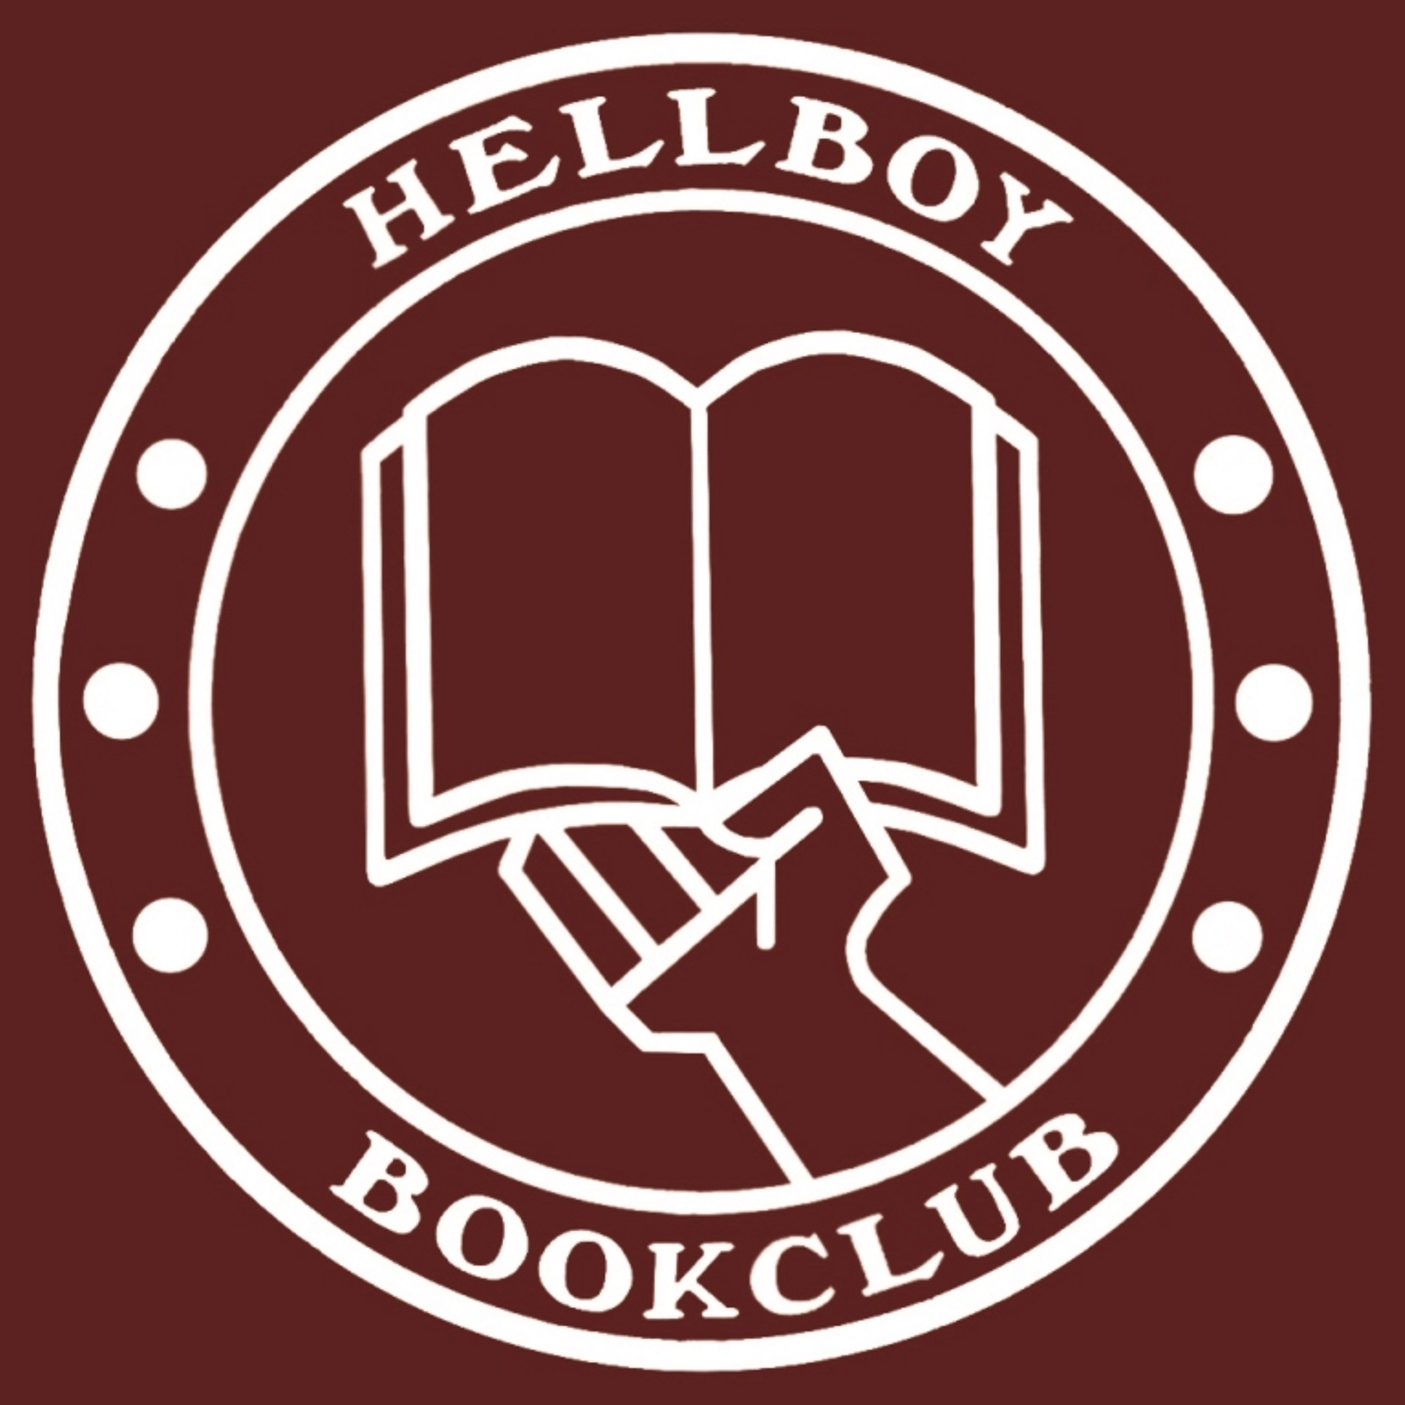 Hellboy Book Club Podcast